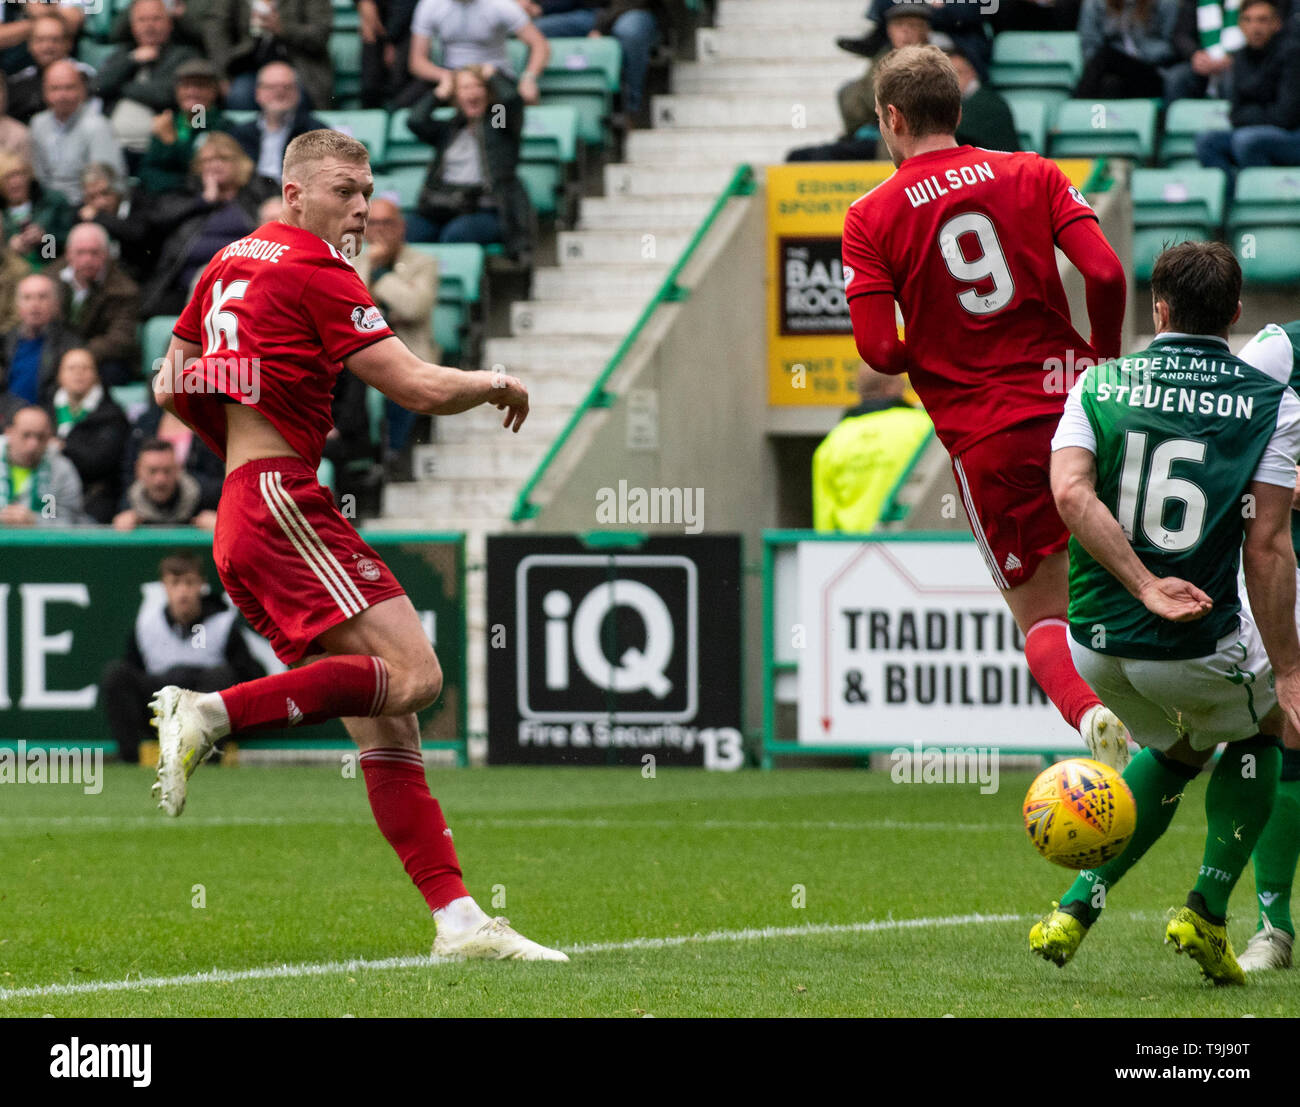 Edinburgh, Scotland, UK. 19th May, 2019. Edinburgh, Scotland, UK. 19th May, 2019.  Pic shows: Aberdeen midfielder, Sam Cosgrove, fires home the equaliser during the first half as Hibs play host to Aberdeen at Easter Road Stadium, Edinburgh Credit: Ian Jacobs/Alamy Live News - Stock Image